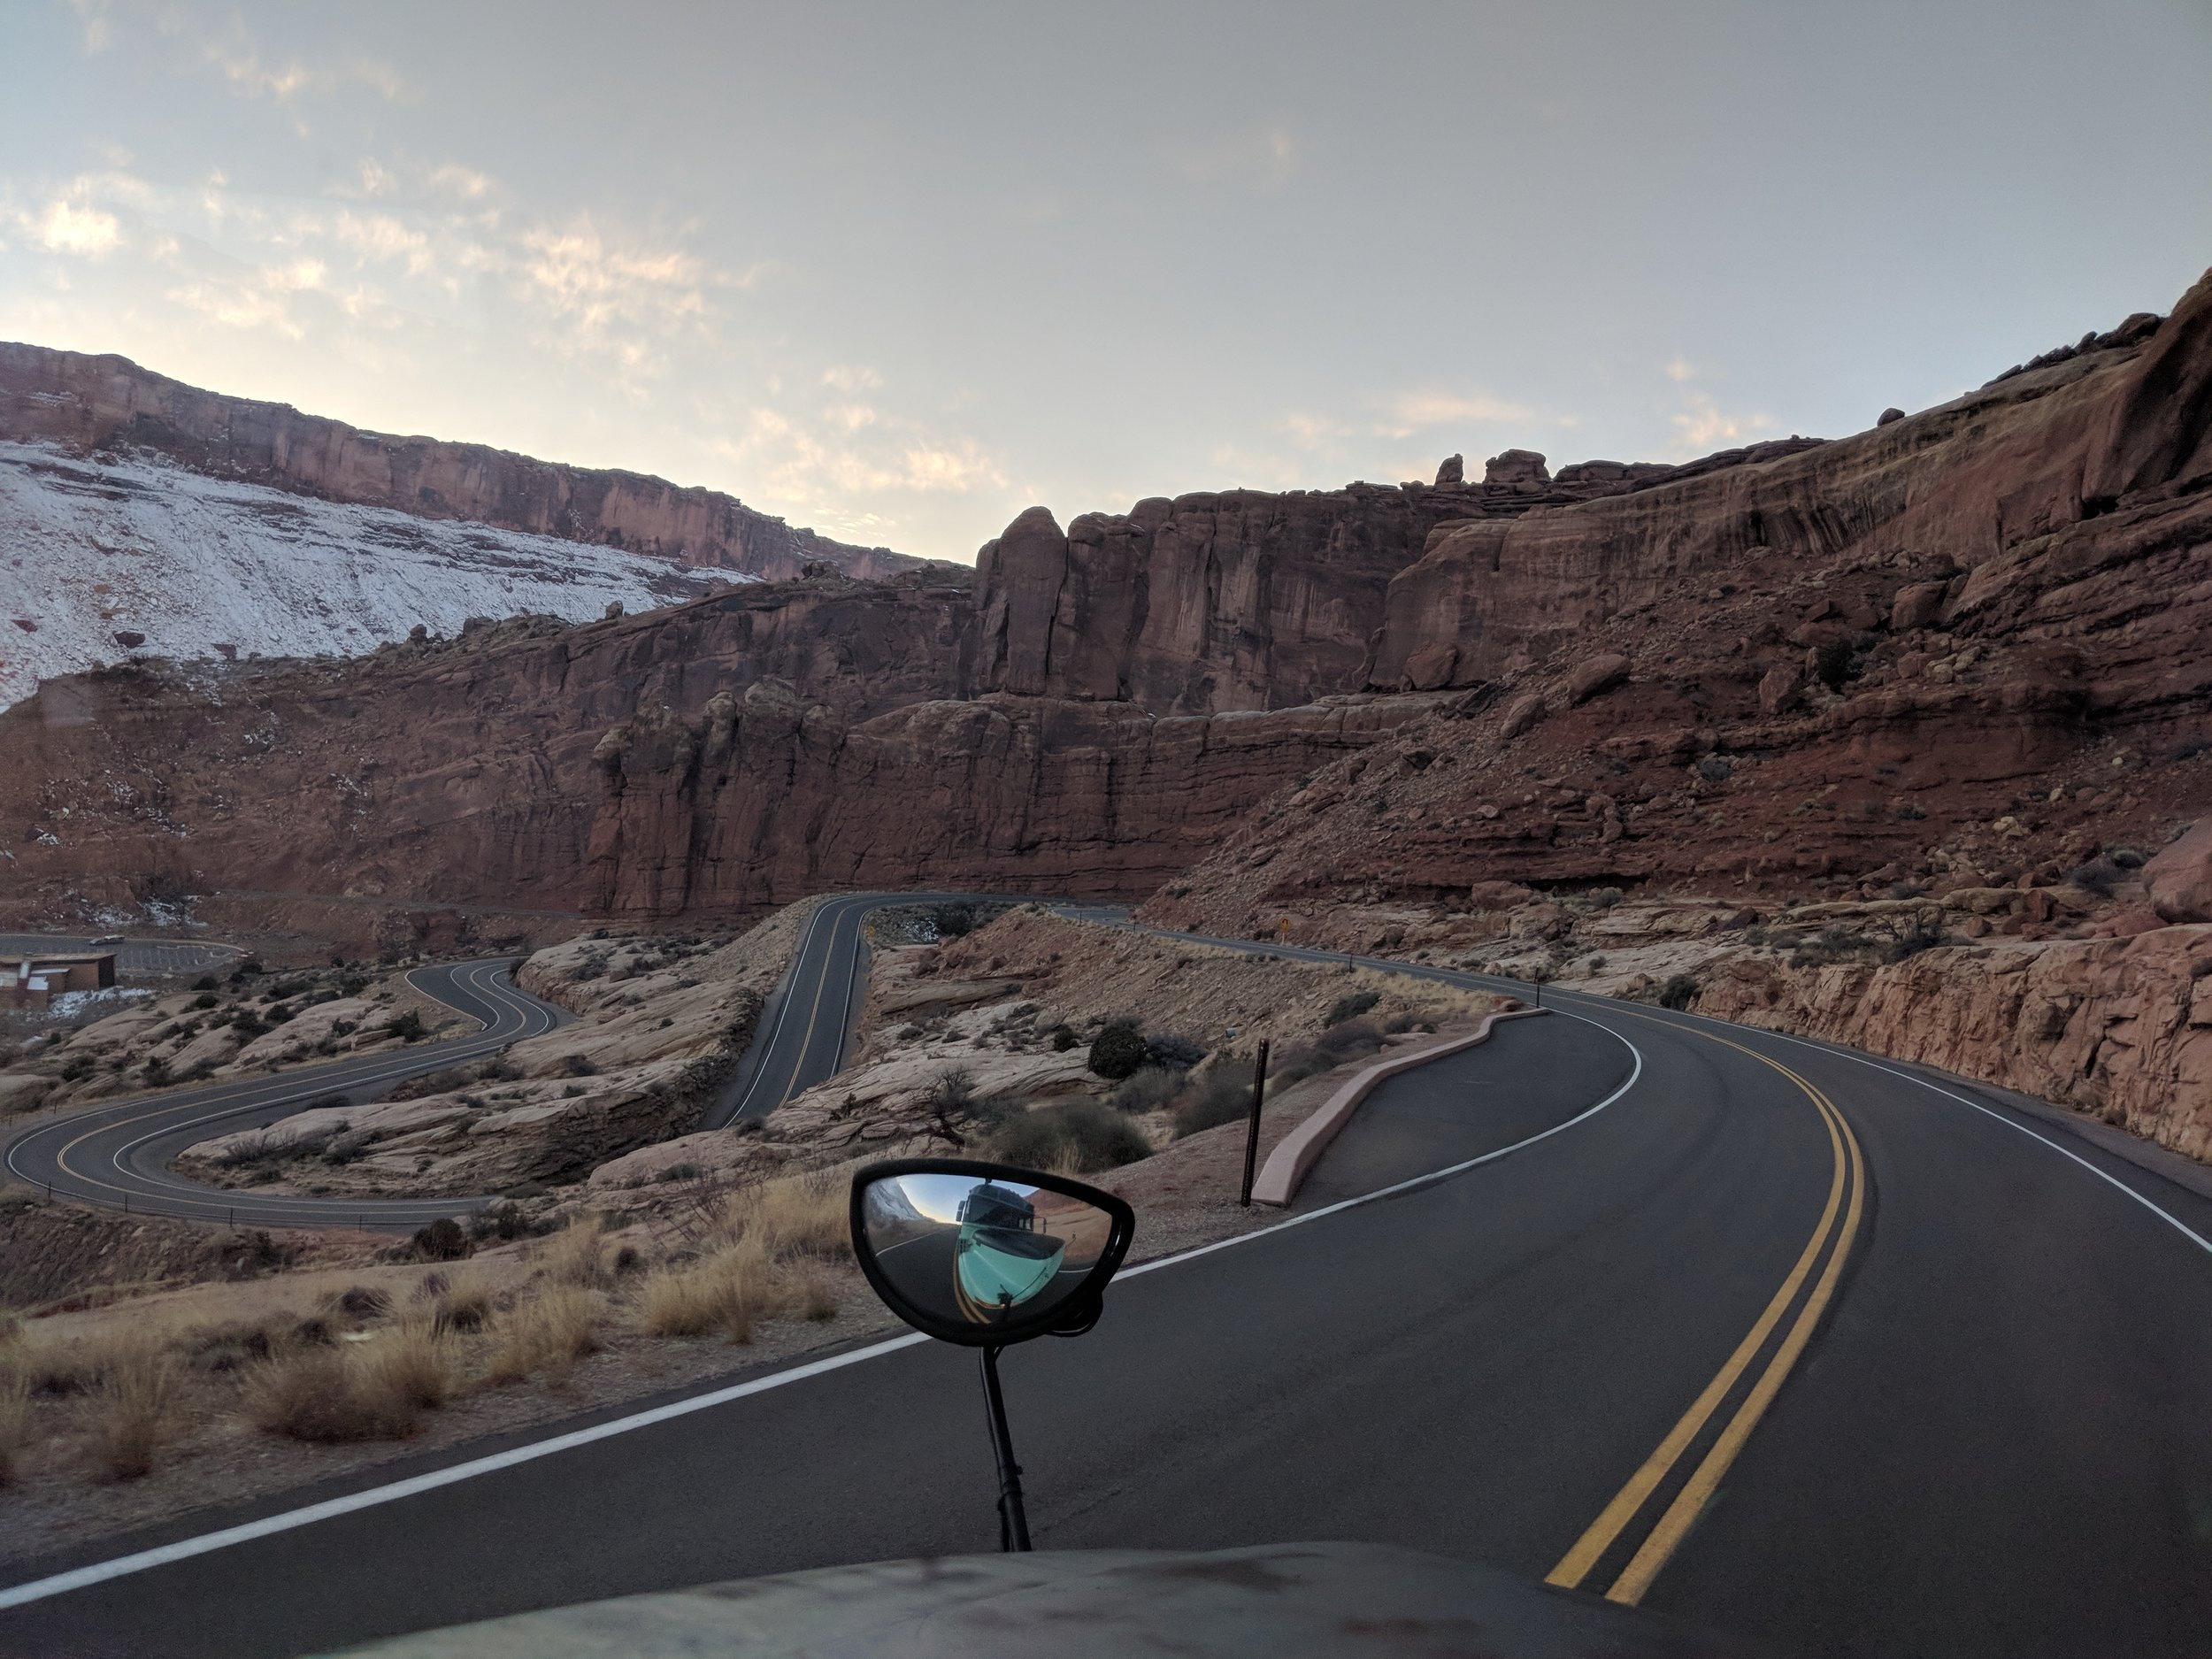 View leaving Arches National Park, Utah.